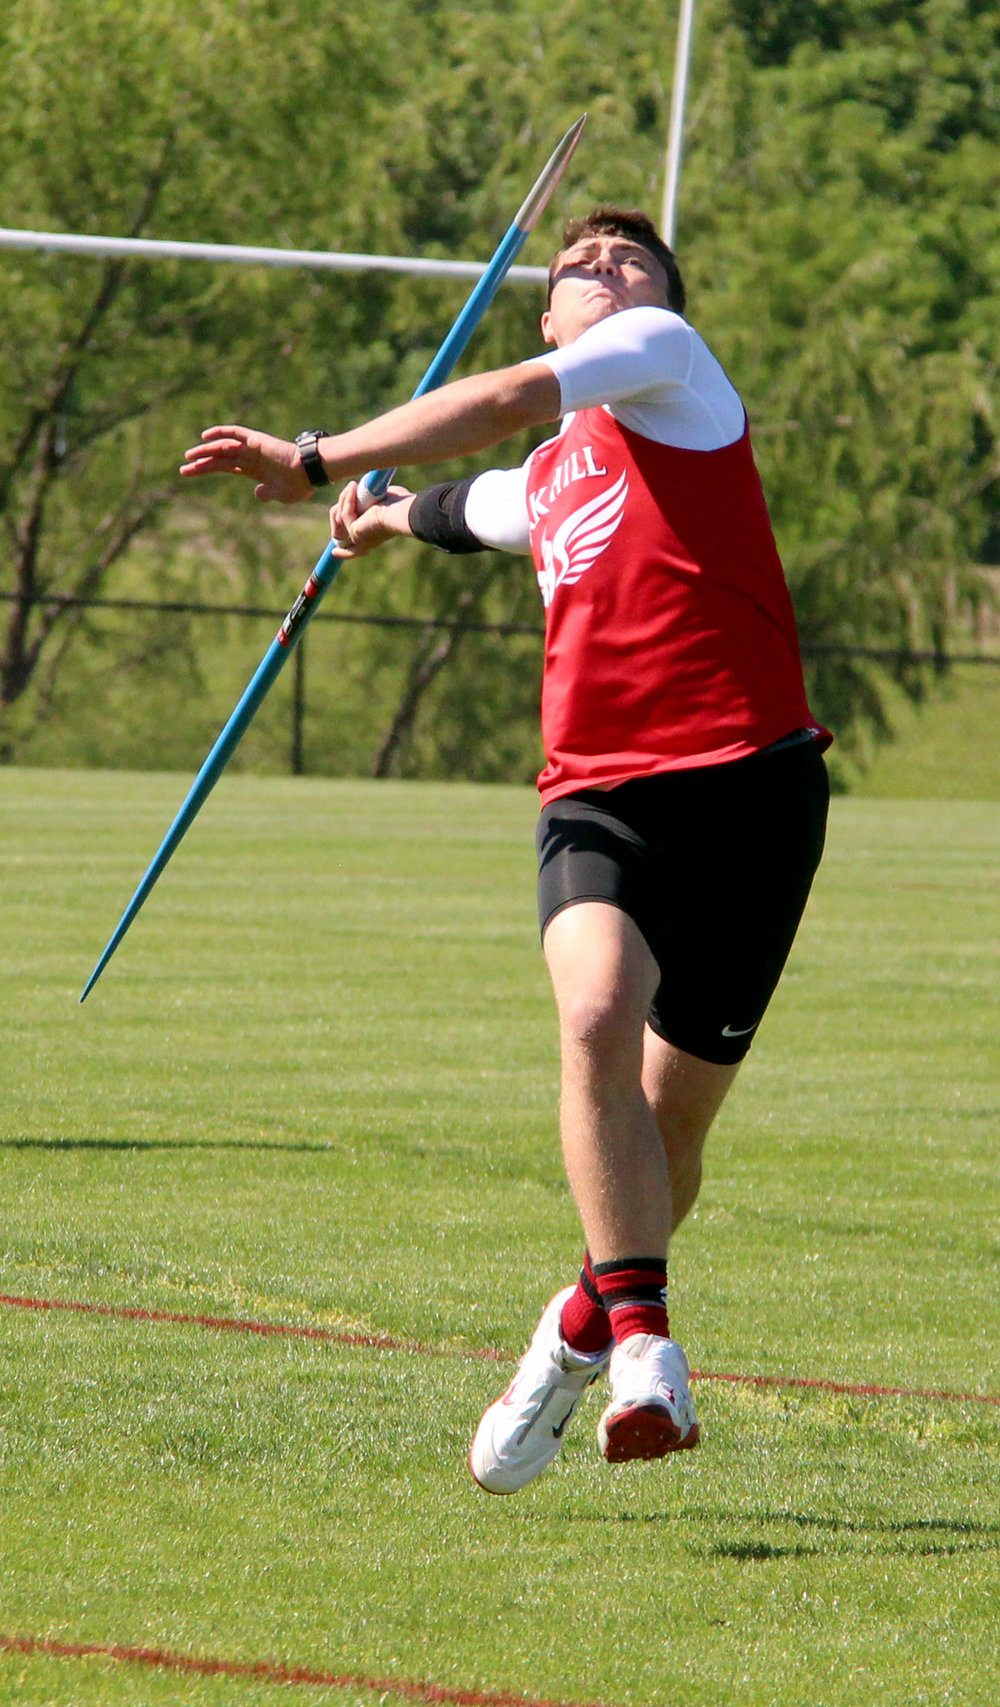 ROSS MARTIN/Citizen photo Park Hill sophomore Kolby Heinerikson takes an attempt in the javelin during the Class 5 District 8 meet Saturday, May 13 at Park Hill District Stadium in Kansas City, Mo.